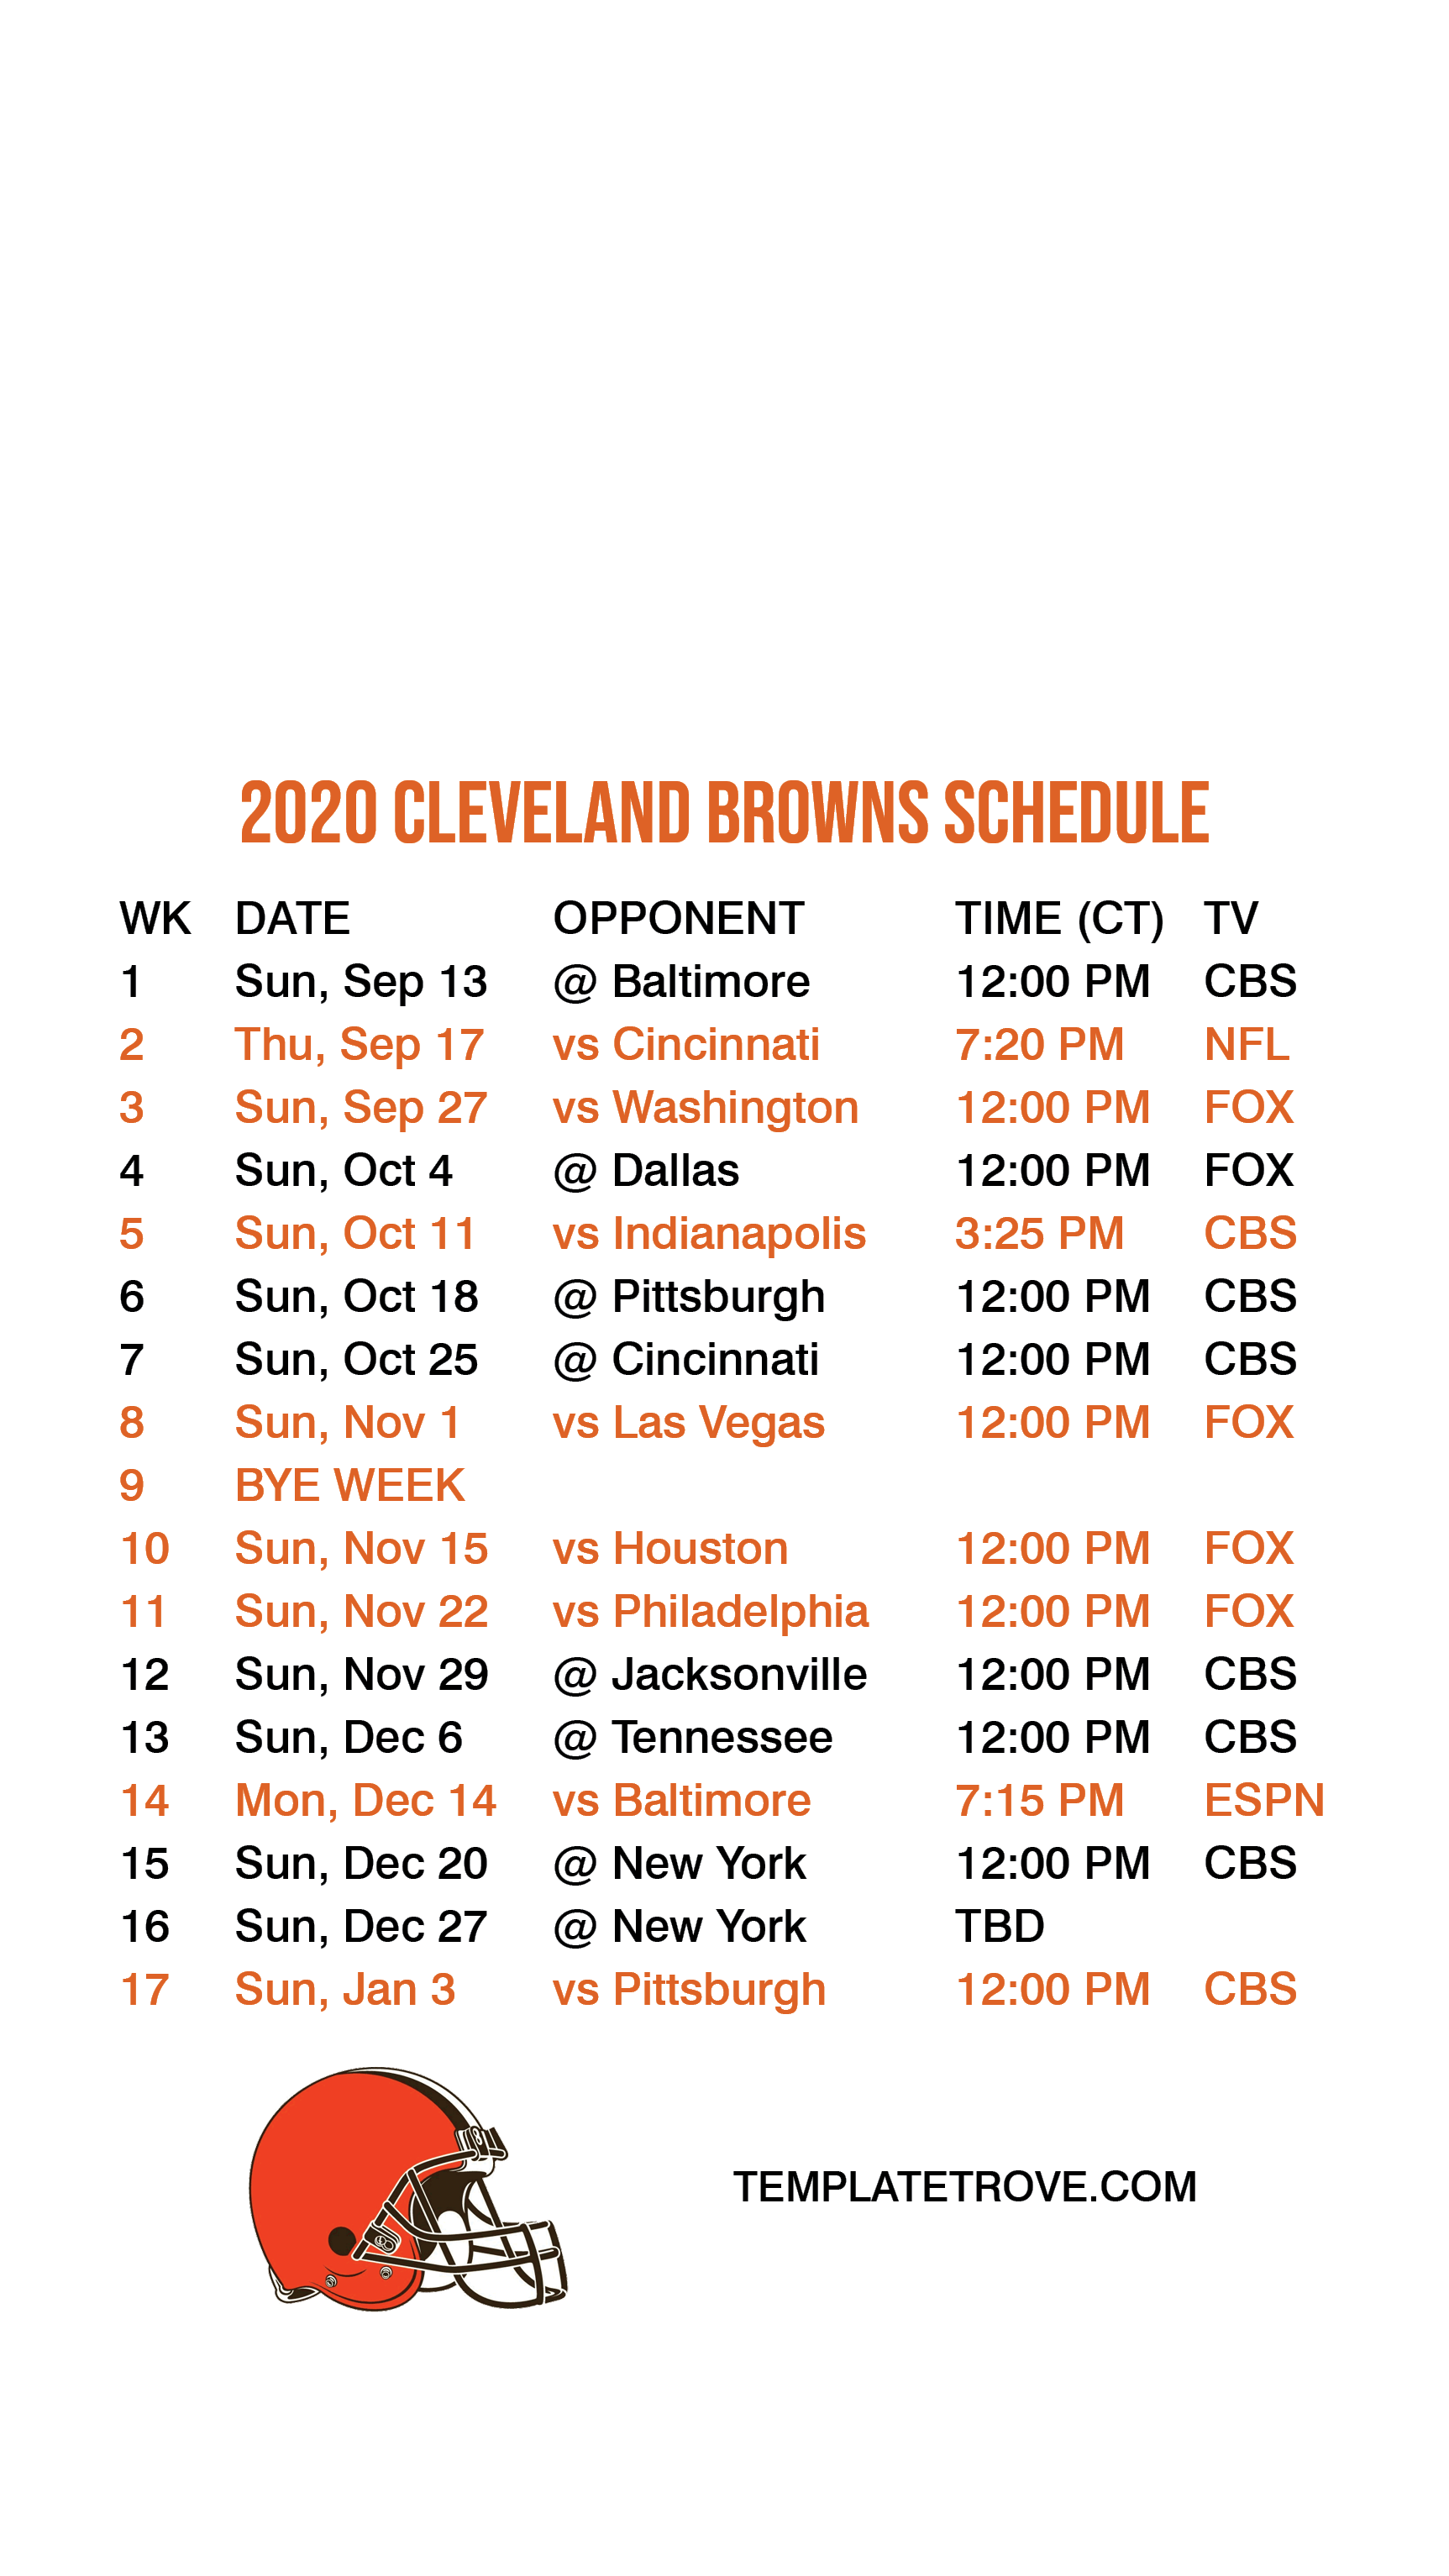 2020 2021 Cleveland Browns Lock Screen Schedule For IPhone